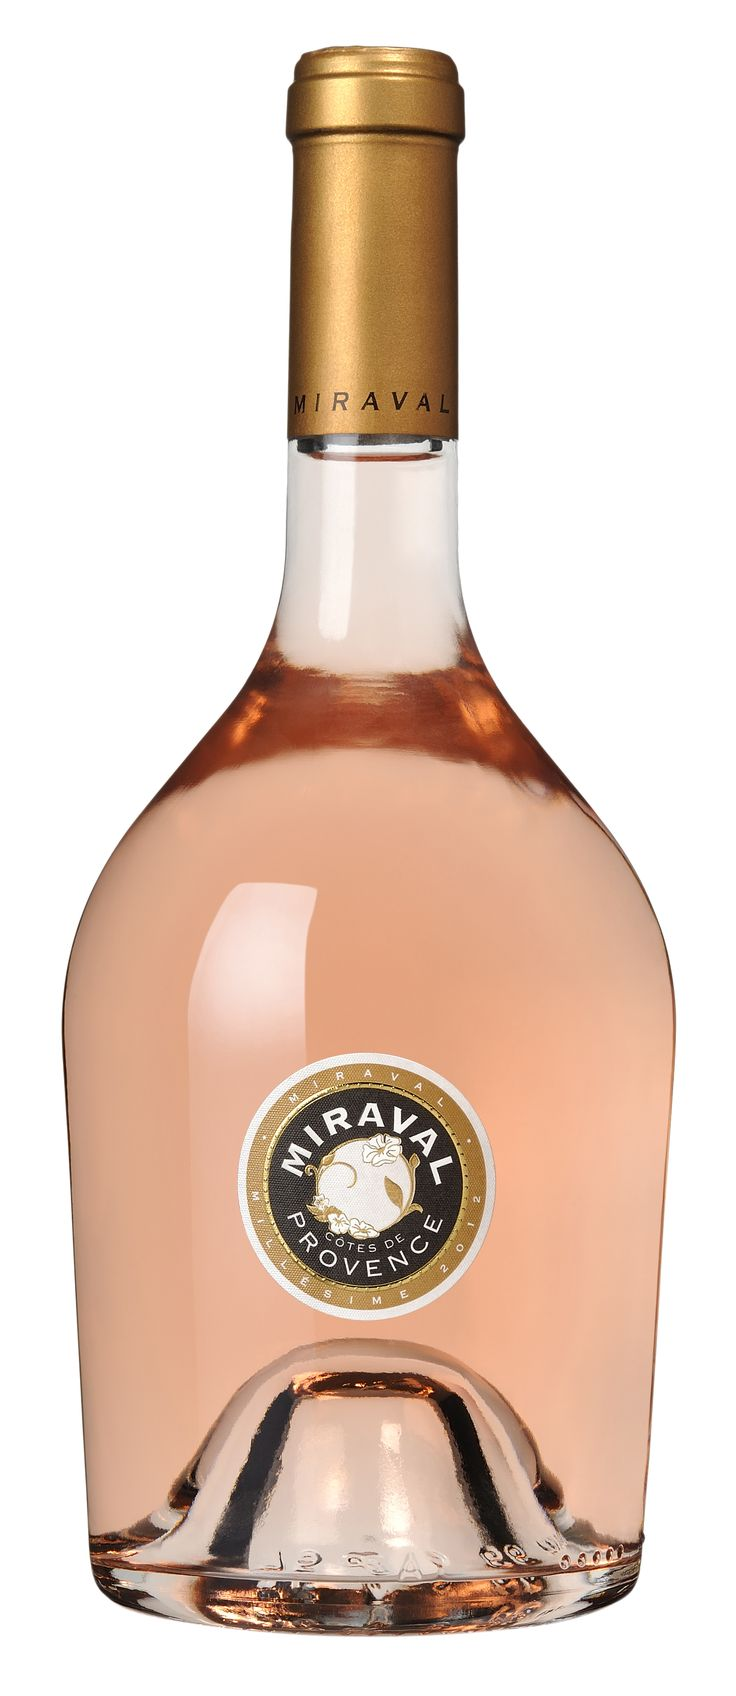 """Miraval Provence Rosé, currently available only at Whole Foods Markets at about $25, is no celebrity stunt. In fact, it is one of the loveliest roses we've tasted in some time."""